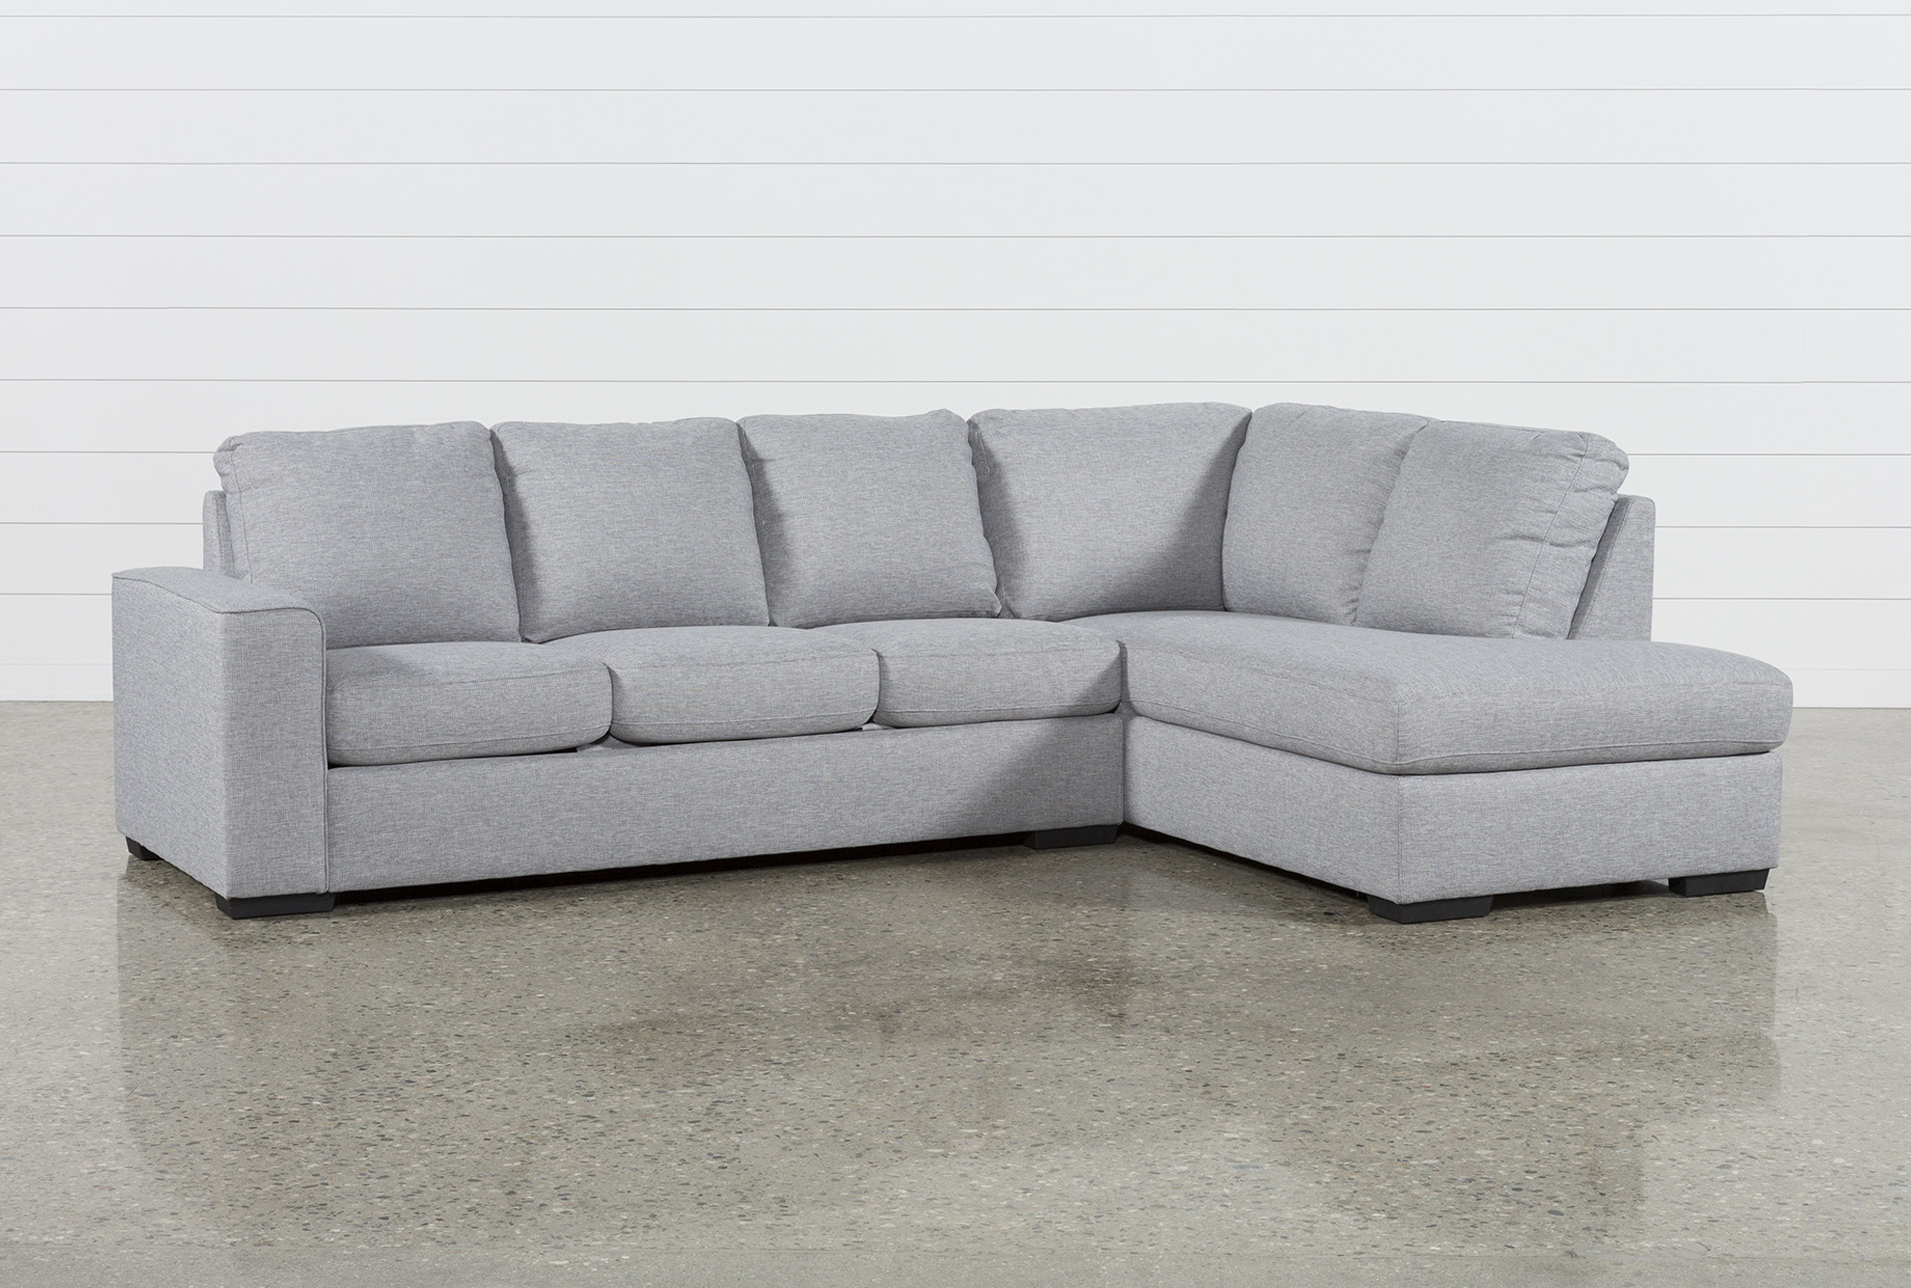 Arrowmask 2 Piece Sectionals With Laf Chaise Inside Most Recent Lucy Grey 2 Piece Sectional W/laf Chaise (View 6 of 20)